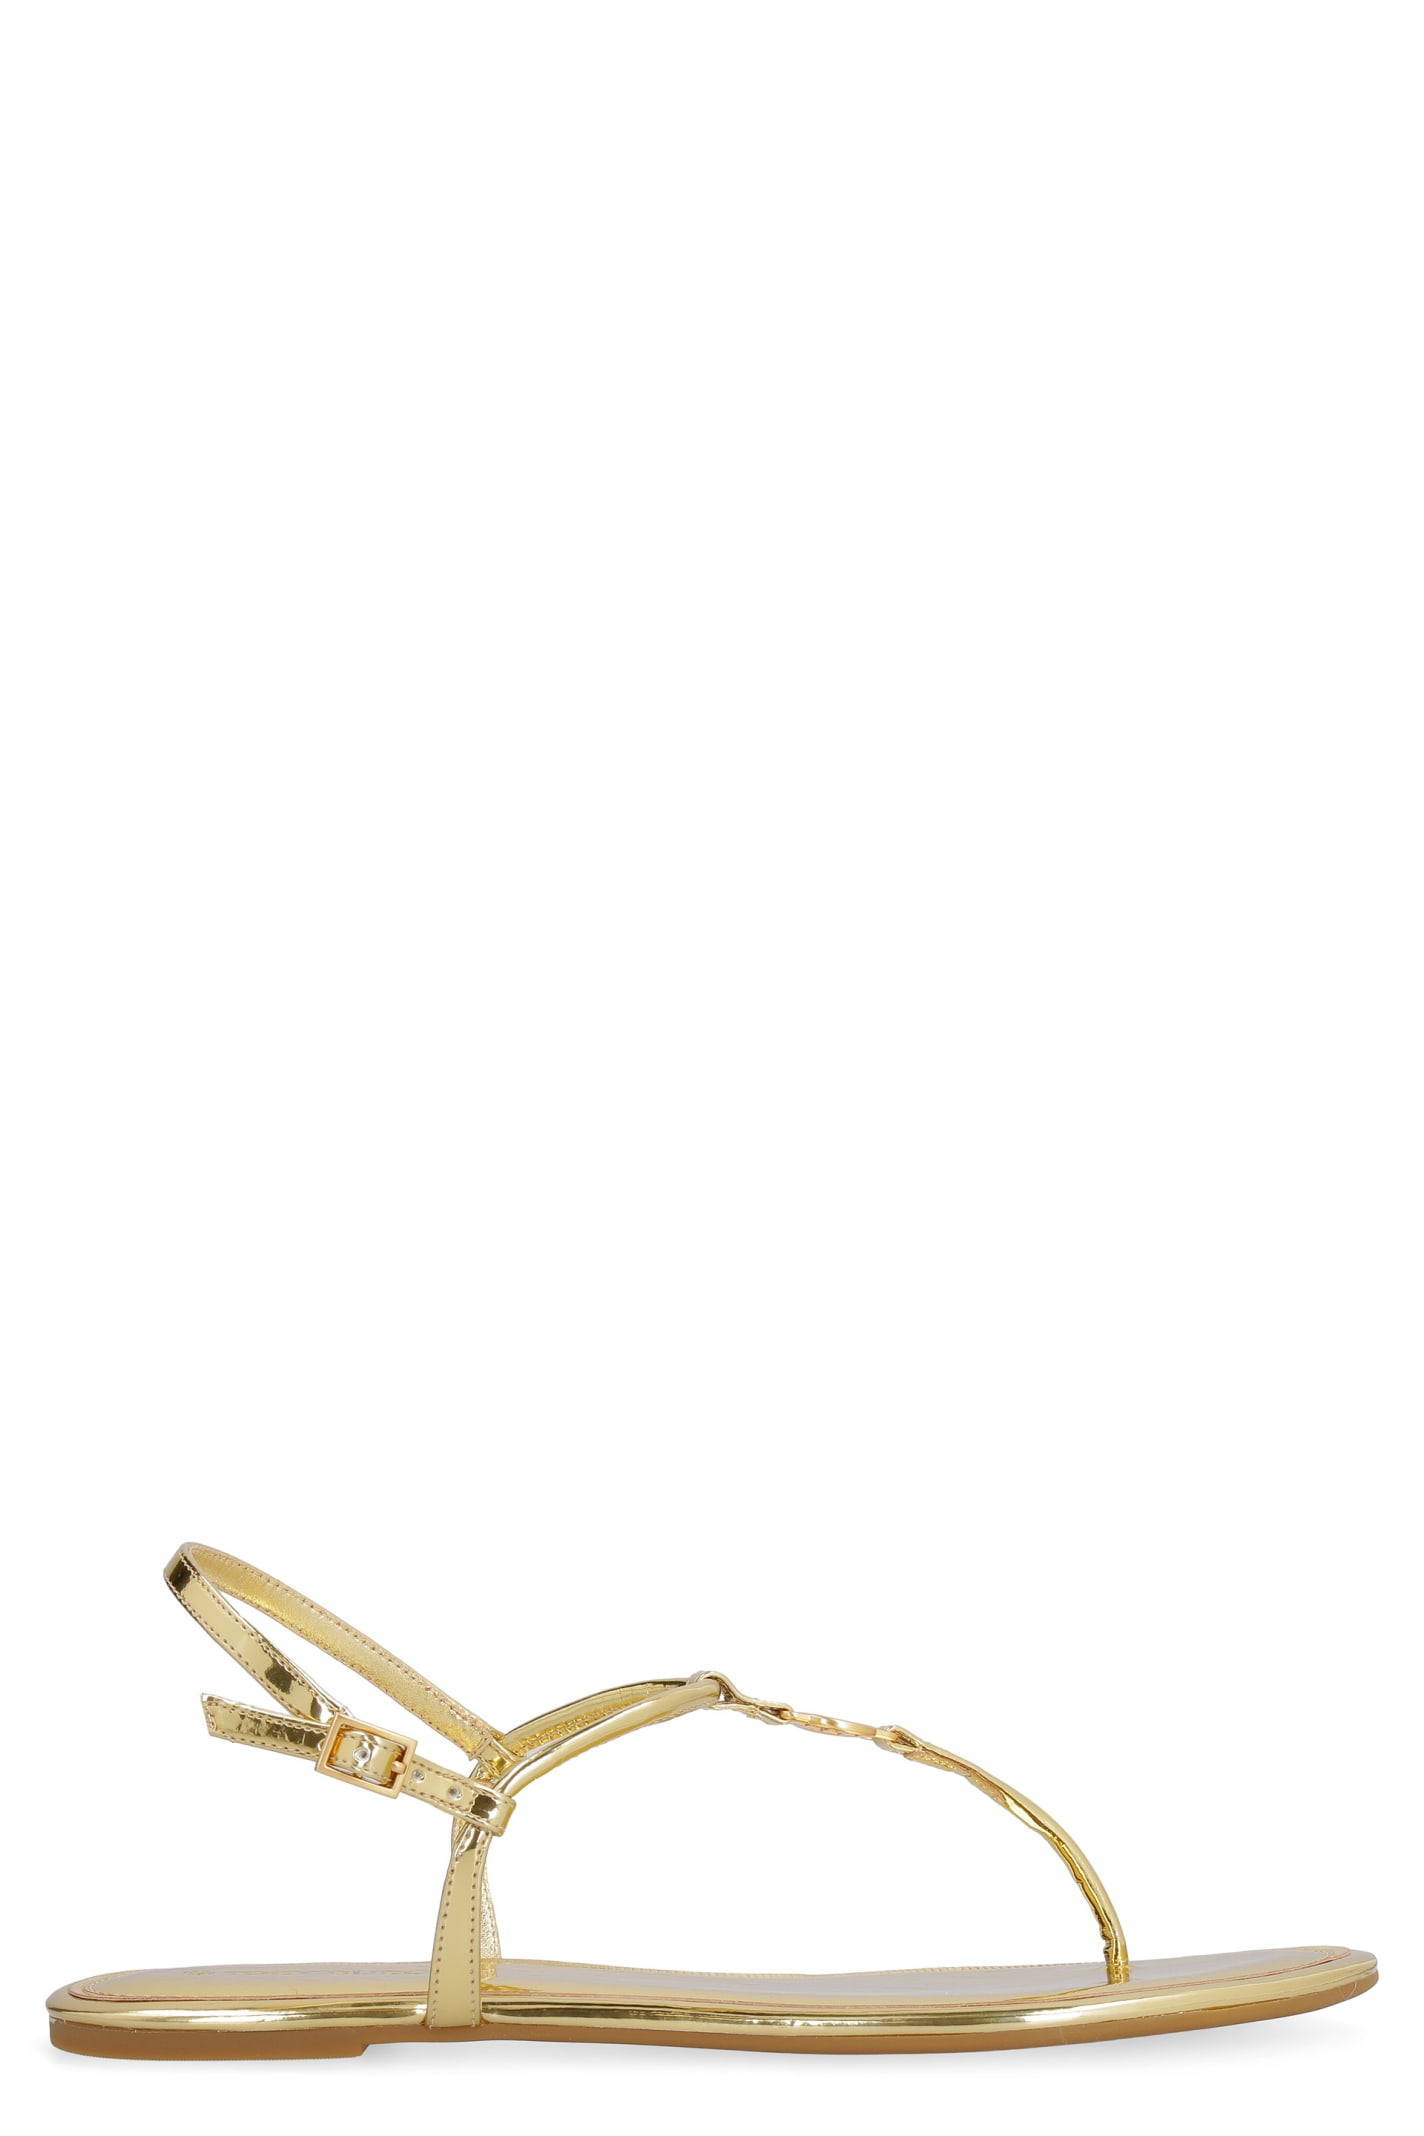 Tory Burch Emmy Leather Thong-sandals